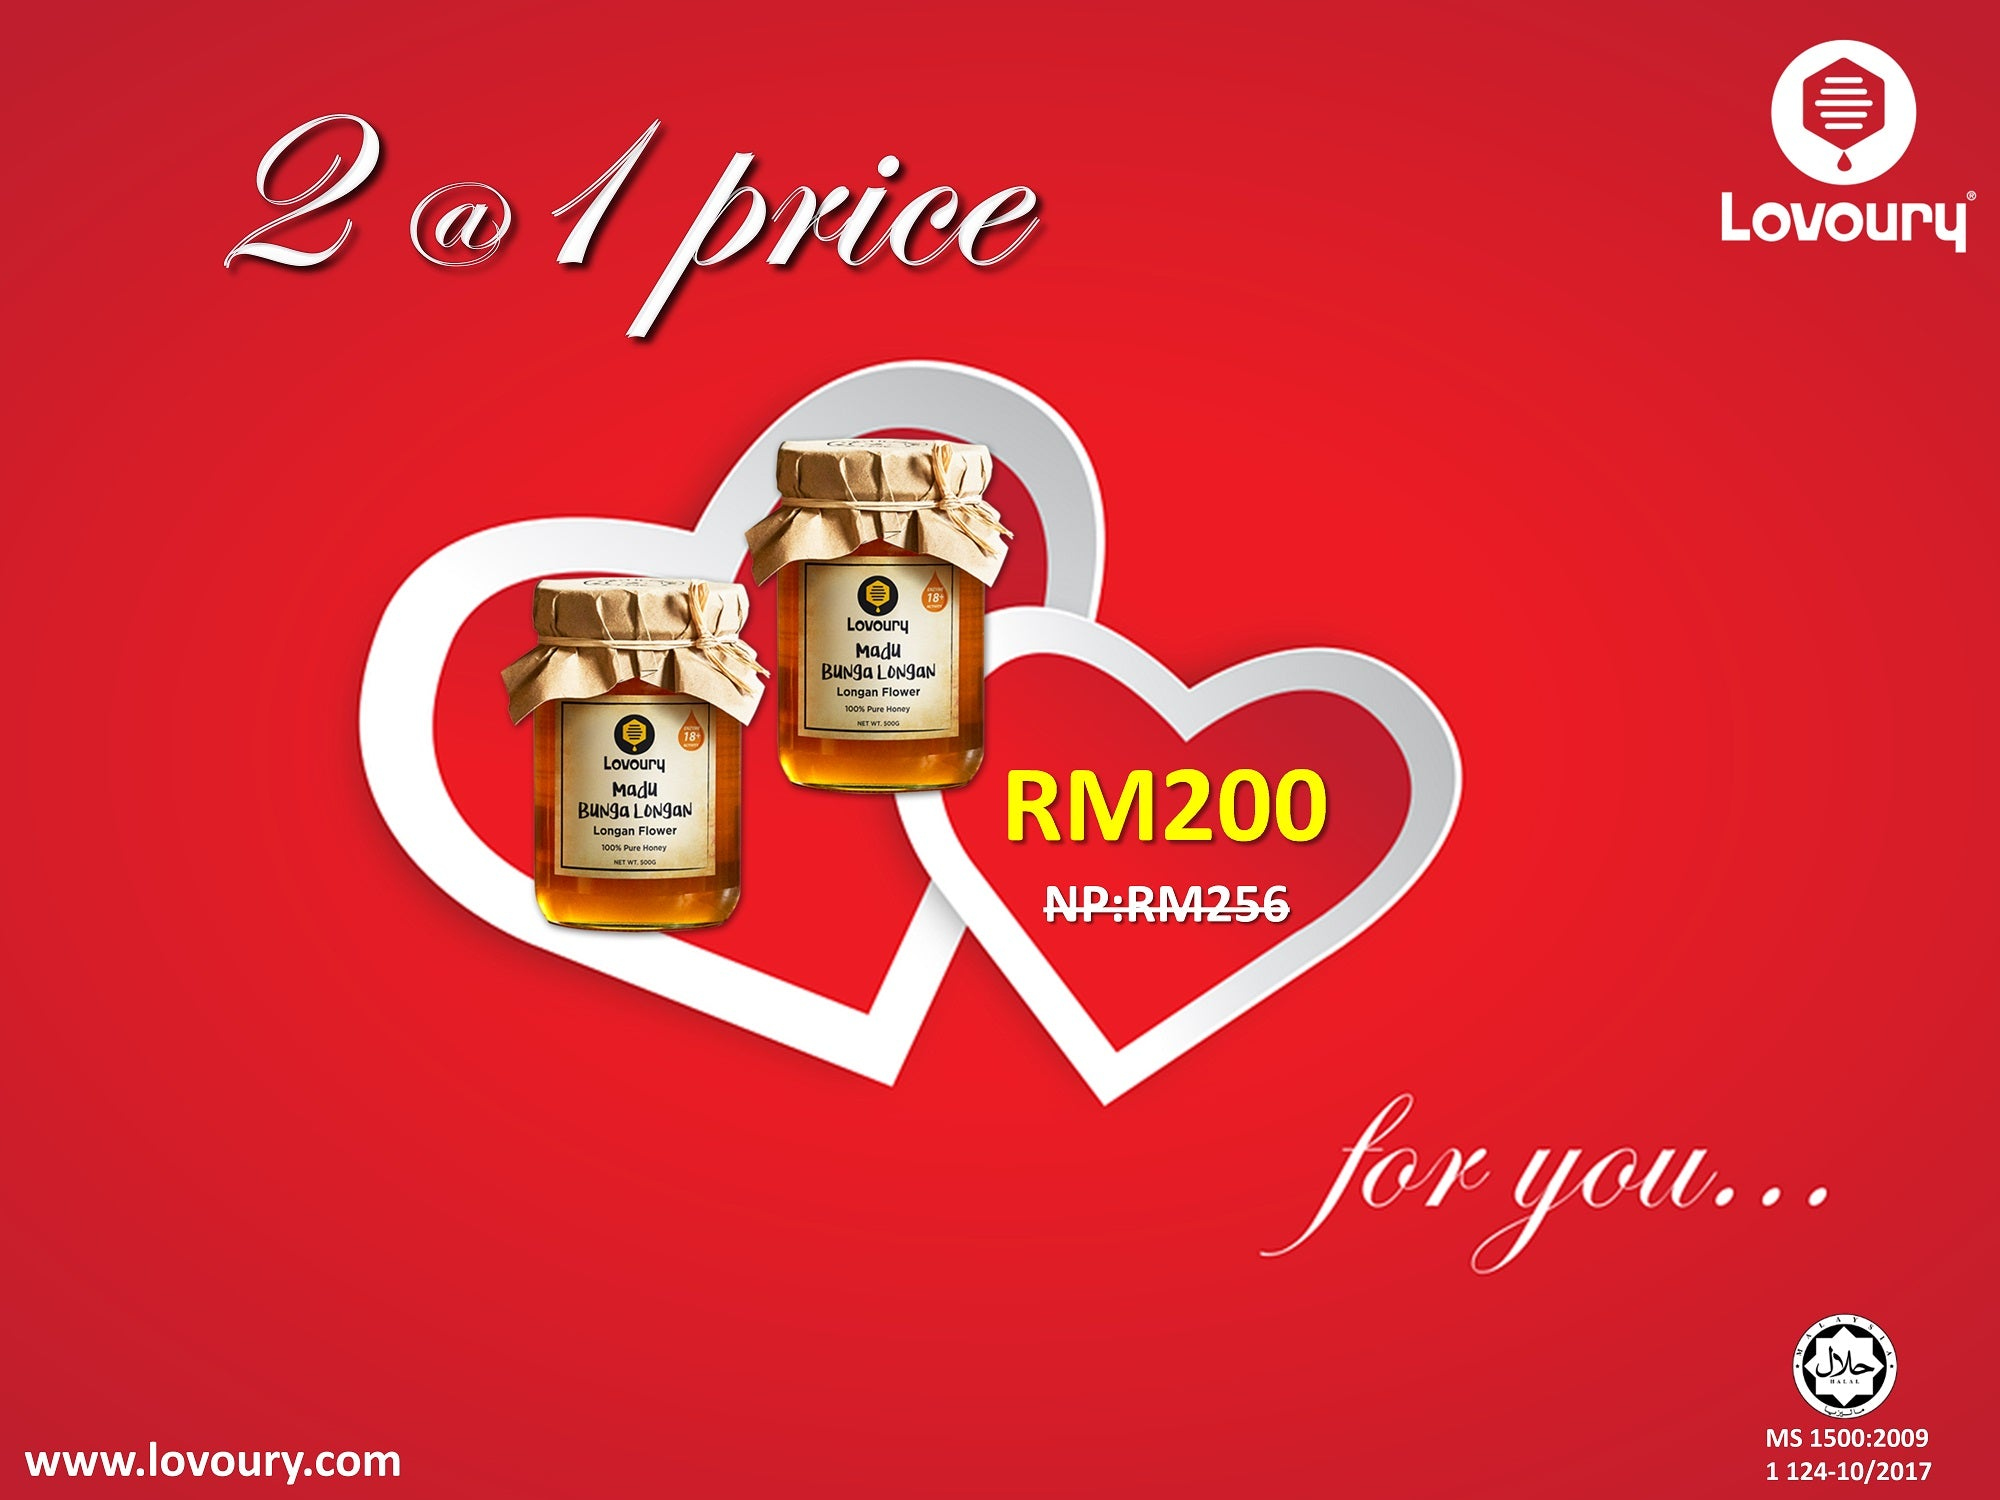 Longan Flower Honey 2@1 Price Valentine's Special Offer